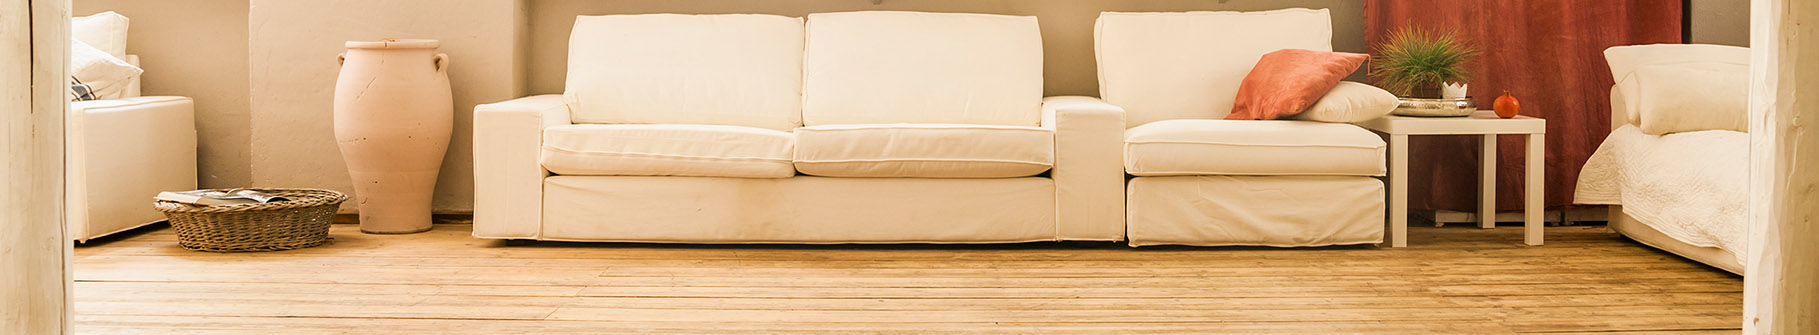 If you find yourself tempted by the convenience of a laminate floor you should know that real wood floors have ... & Real Wood Floors Wood vs. Laminate | Murphy® Oil Soap